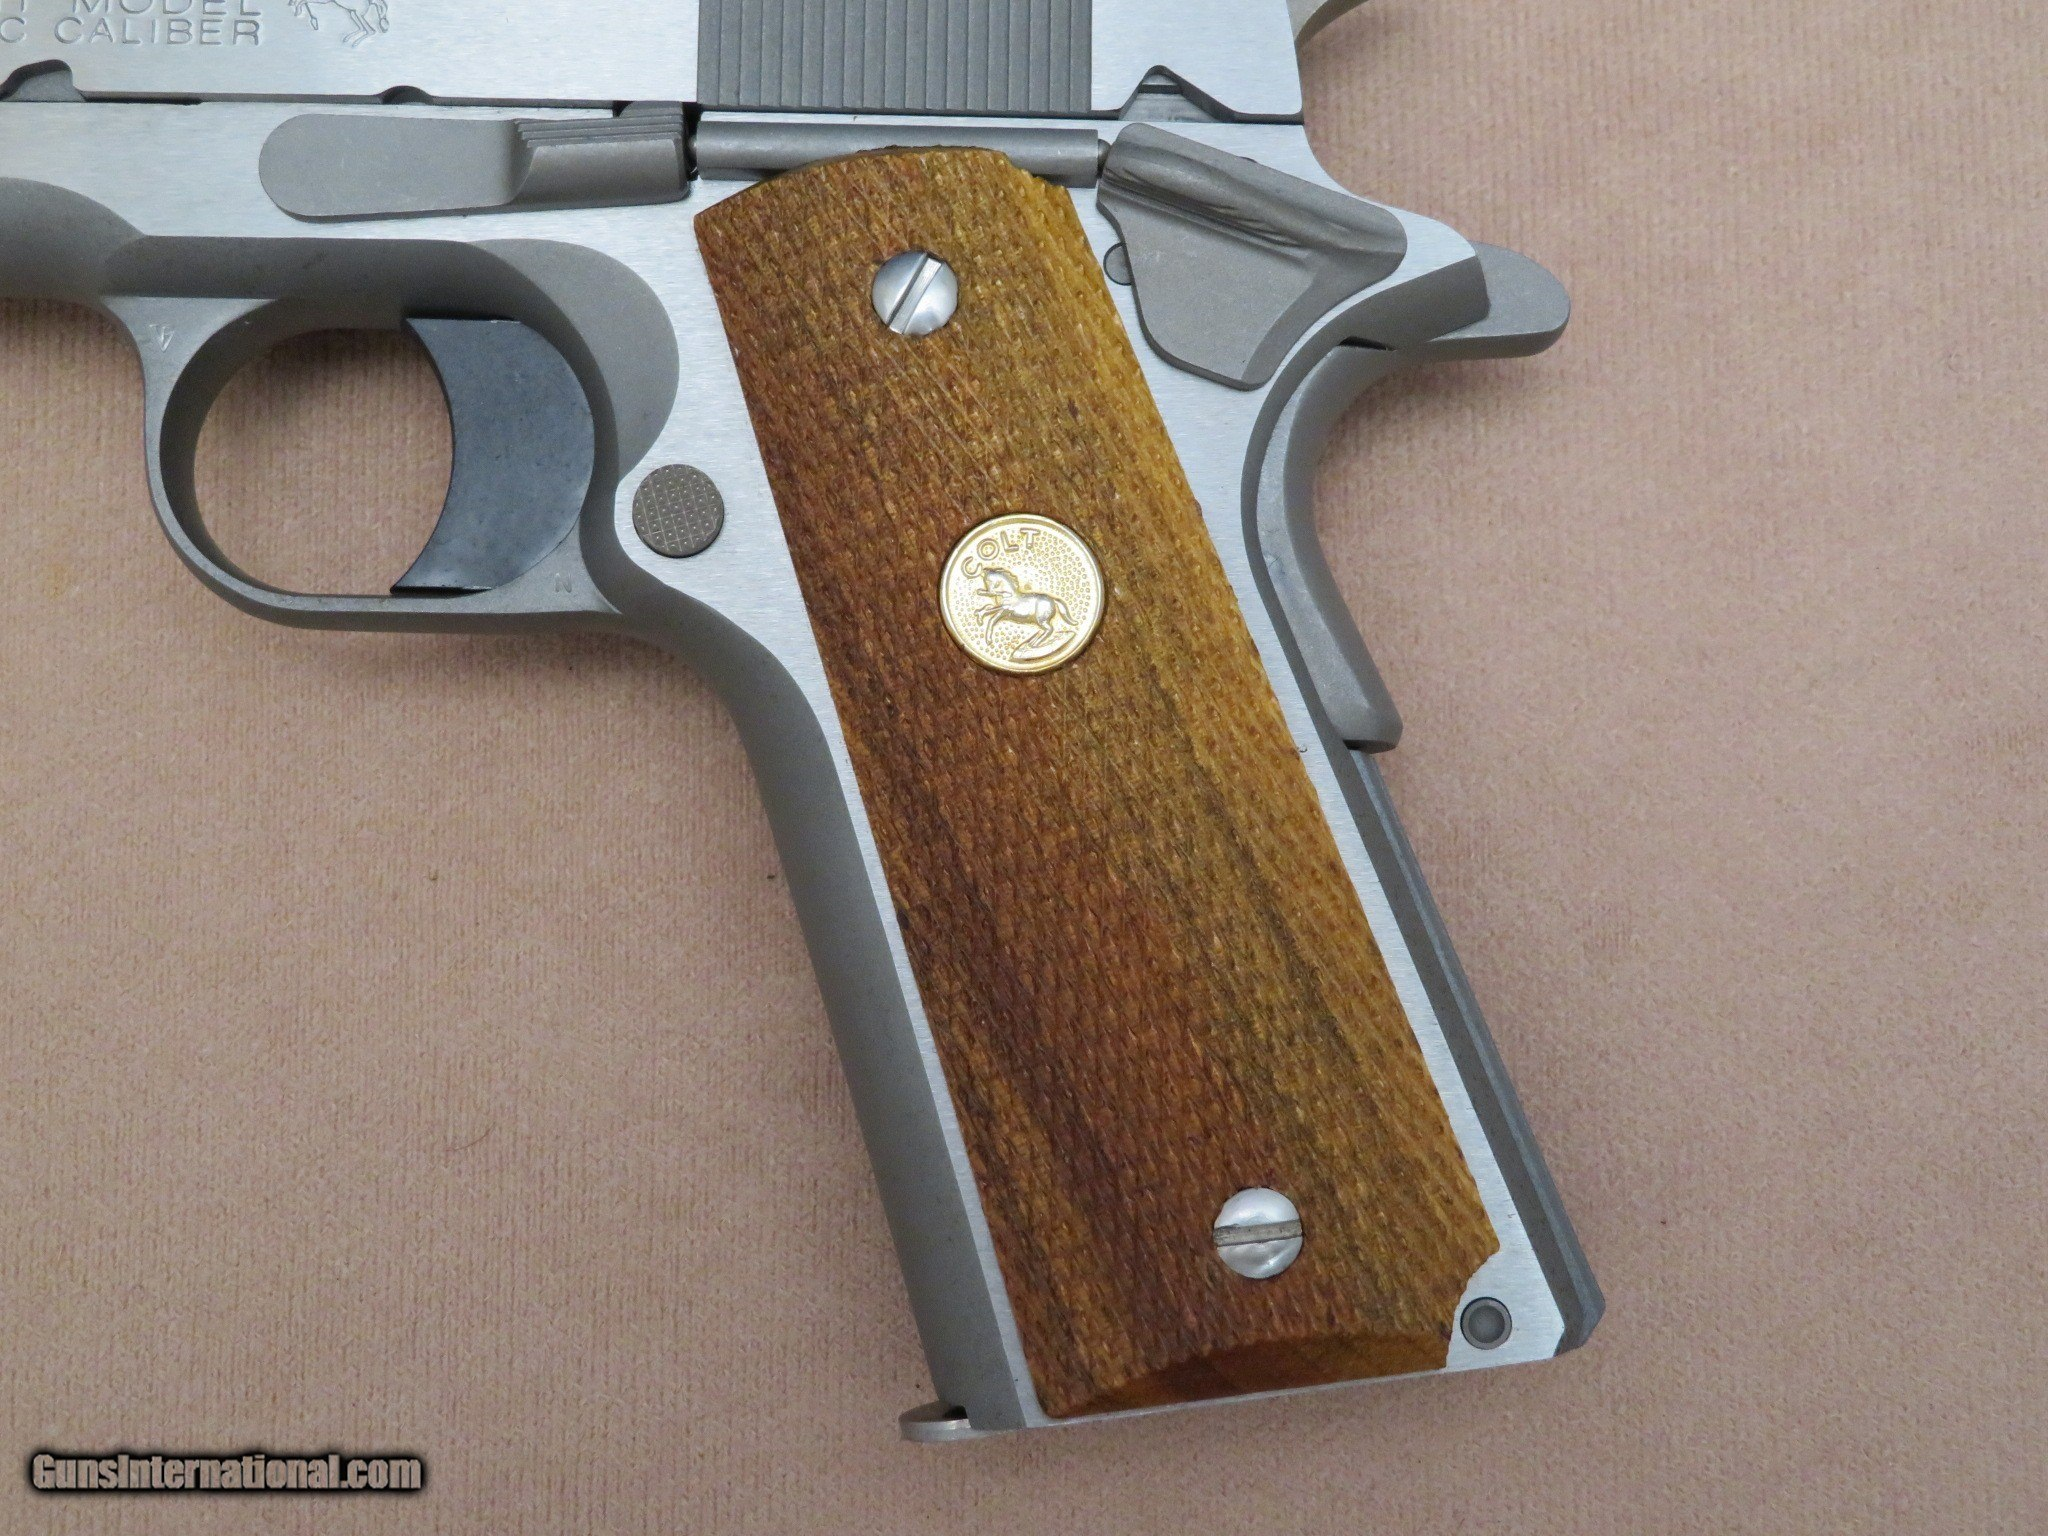 2013 Colt Government Model 0 1911  45 ACP in Brushed Stainless Steel